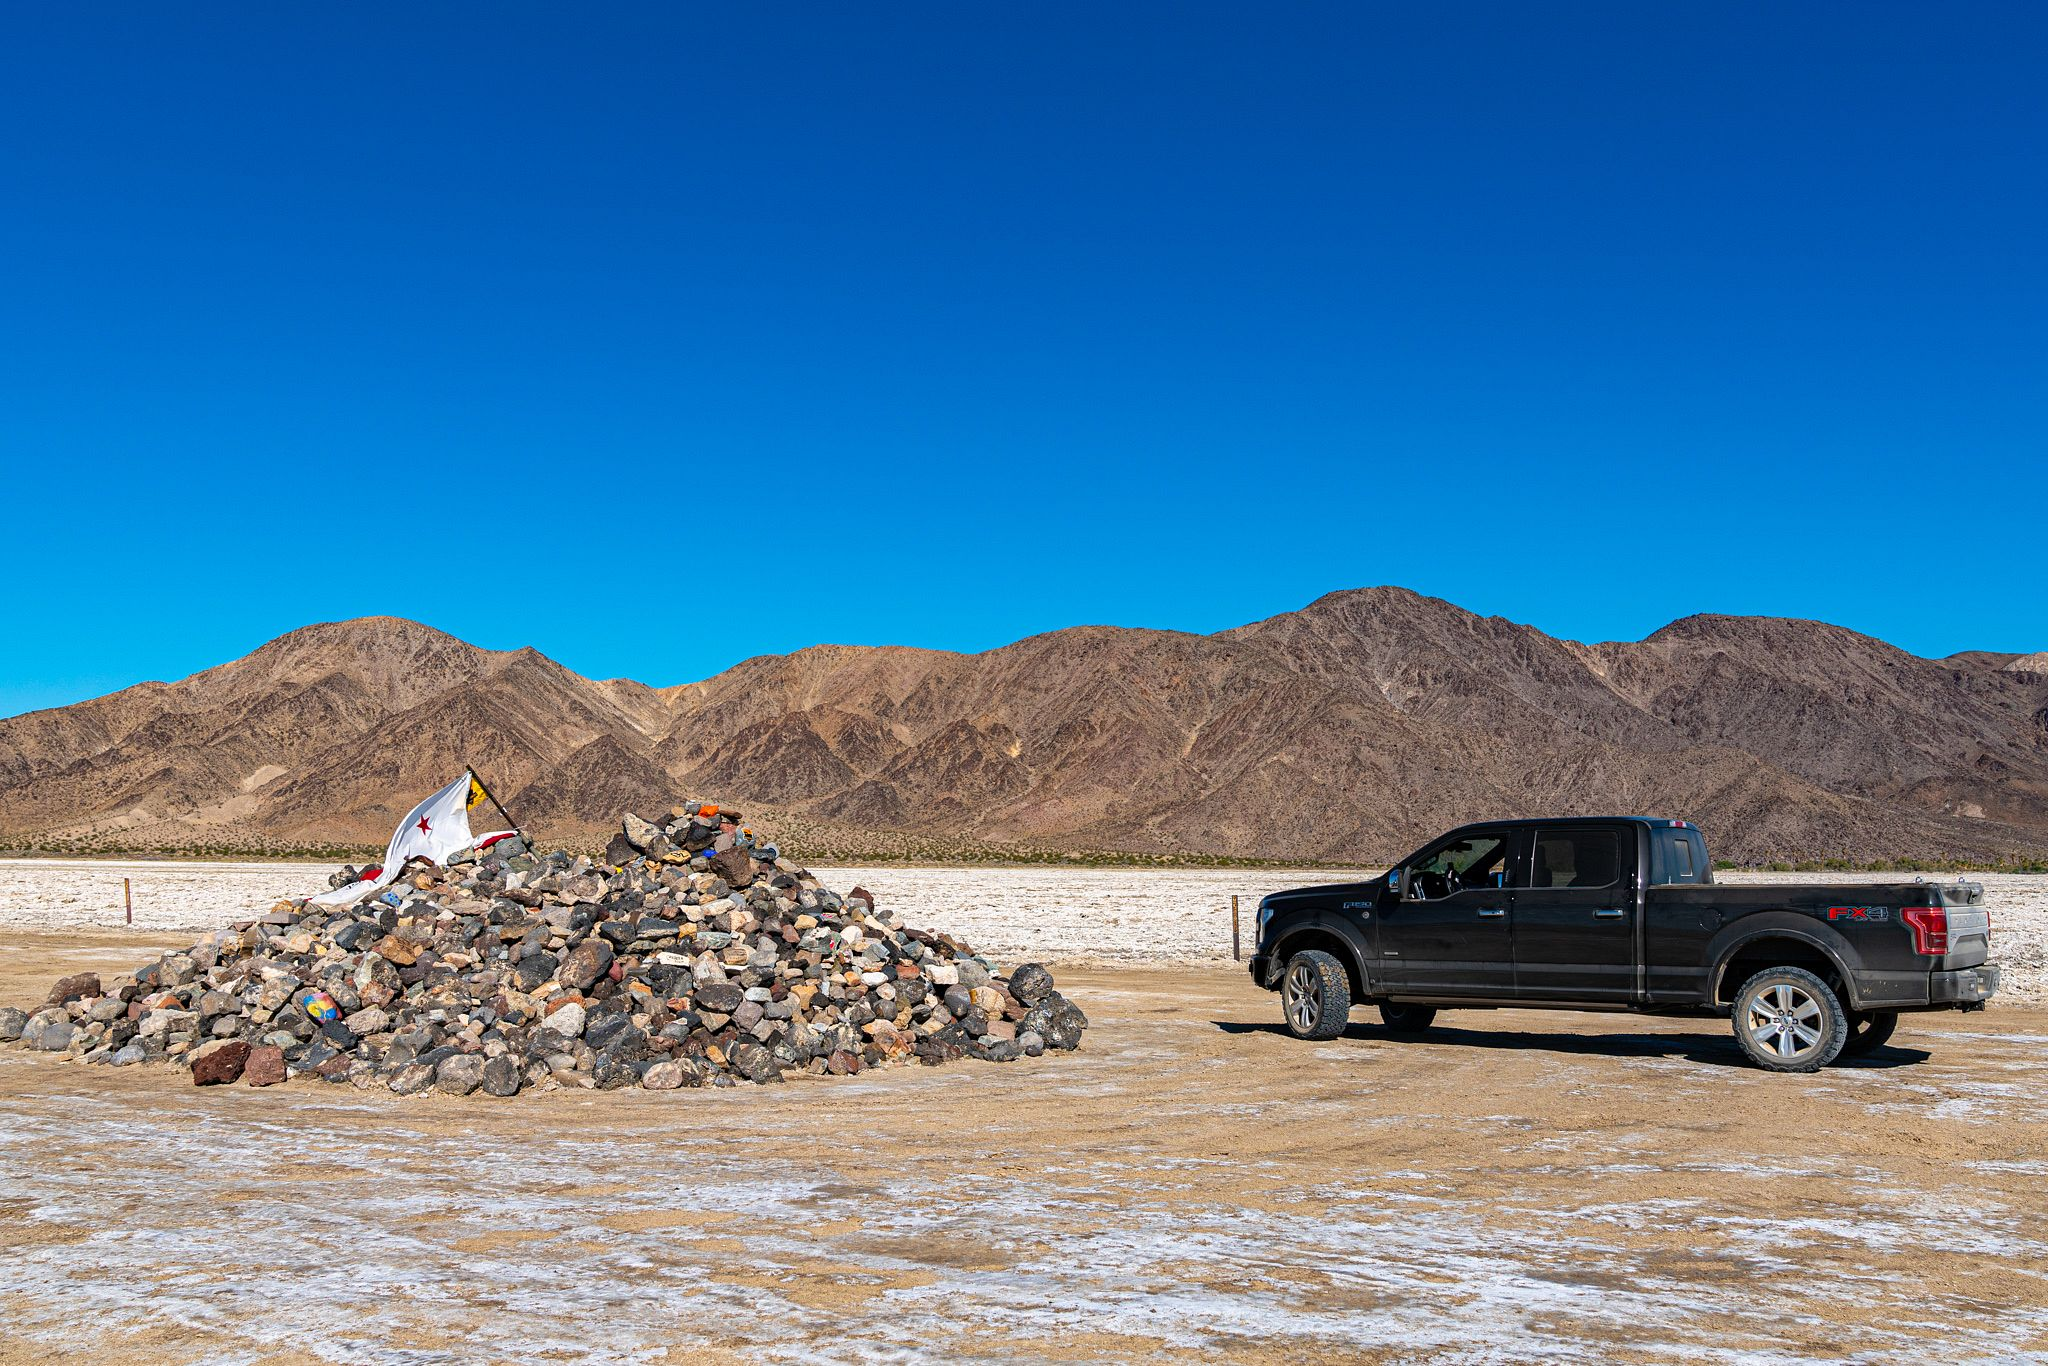 Traveler's Monument on the Mojave Road